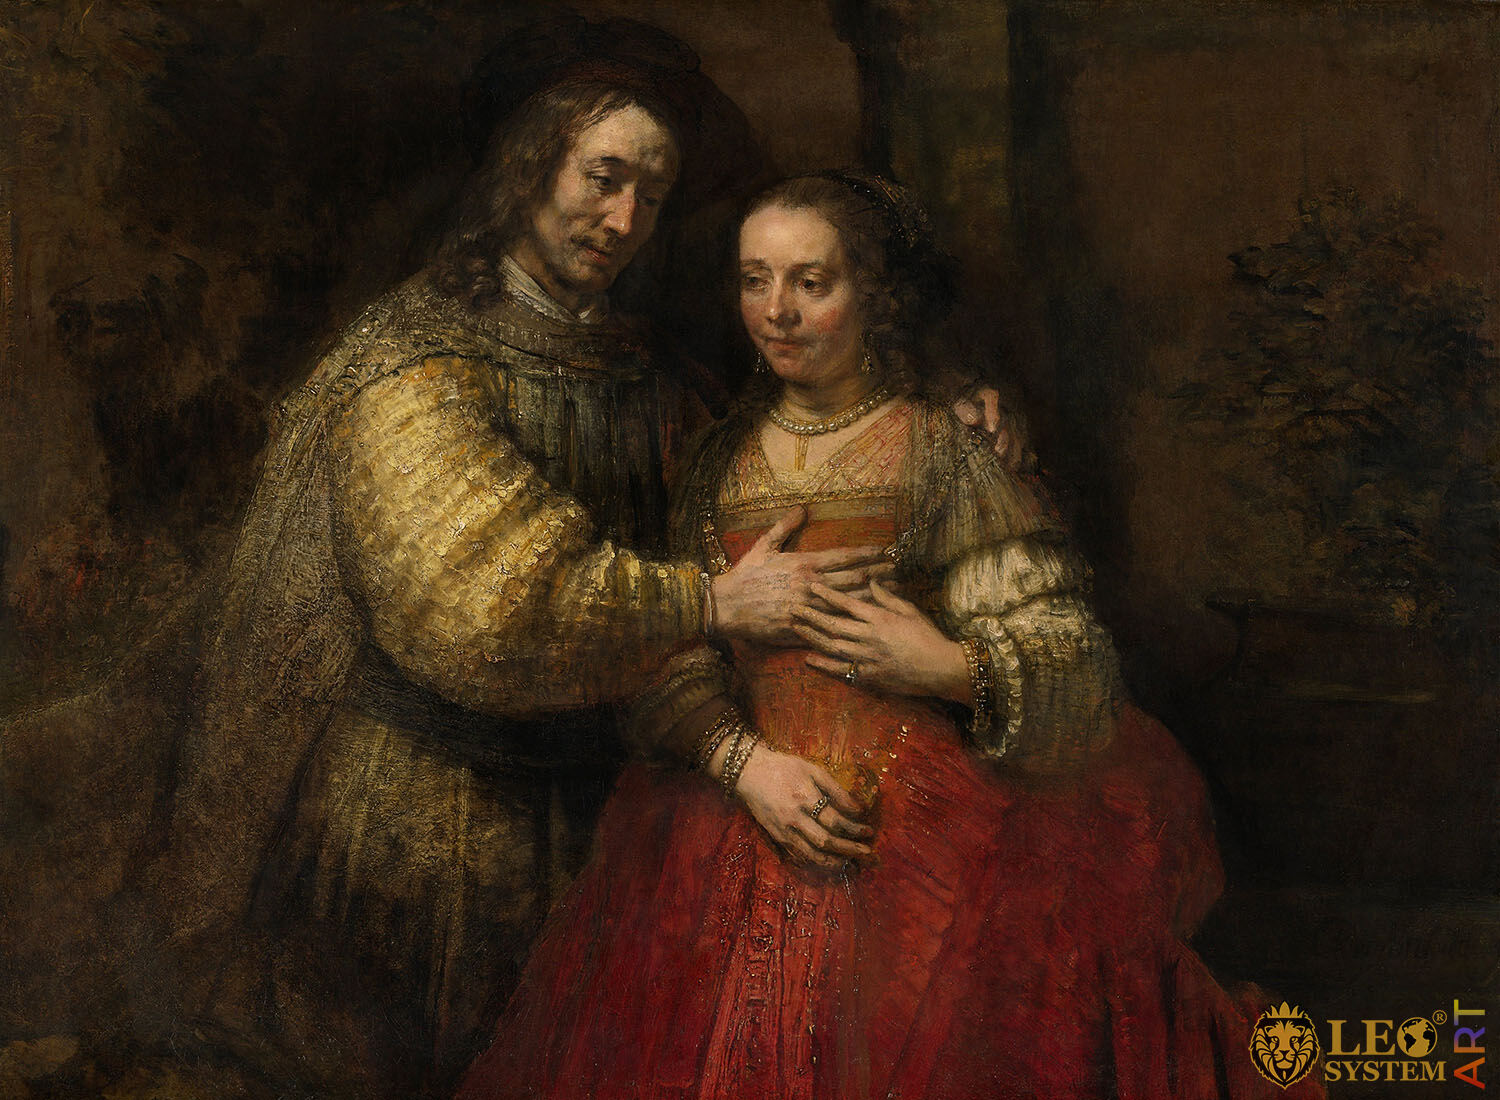 Isaac and Rebecca, known as 'The Jewish Bride', Artist: Rembrandt van Rijn, 1665-1669, Amsterdam, Netherlands, Original painting